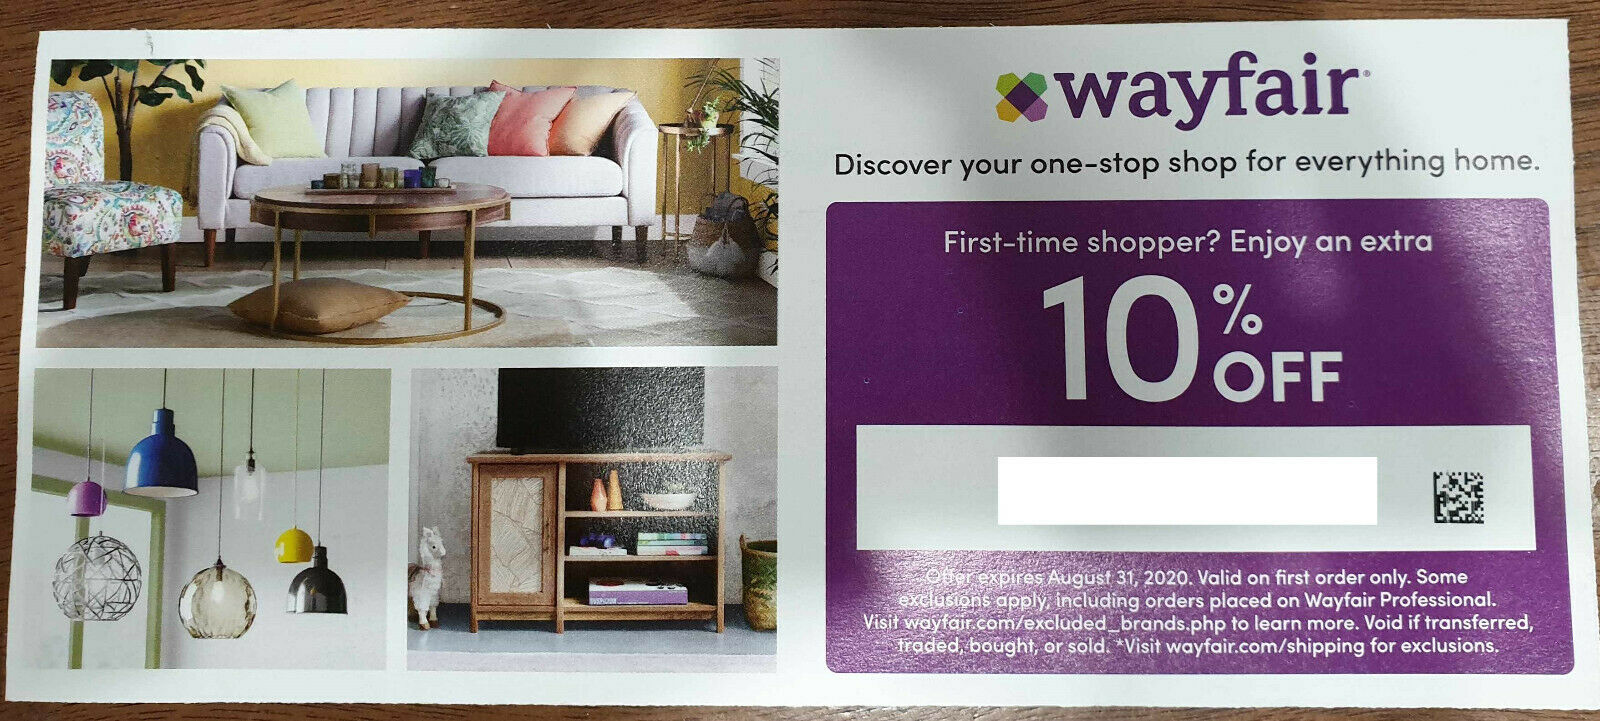 Wayfair.com 10 Off Email Delivery  - $4.99